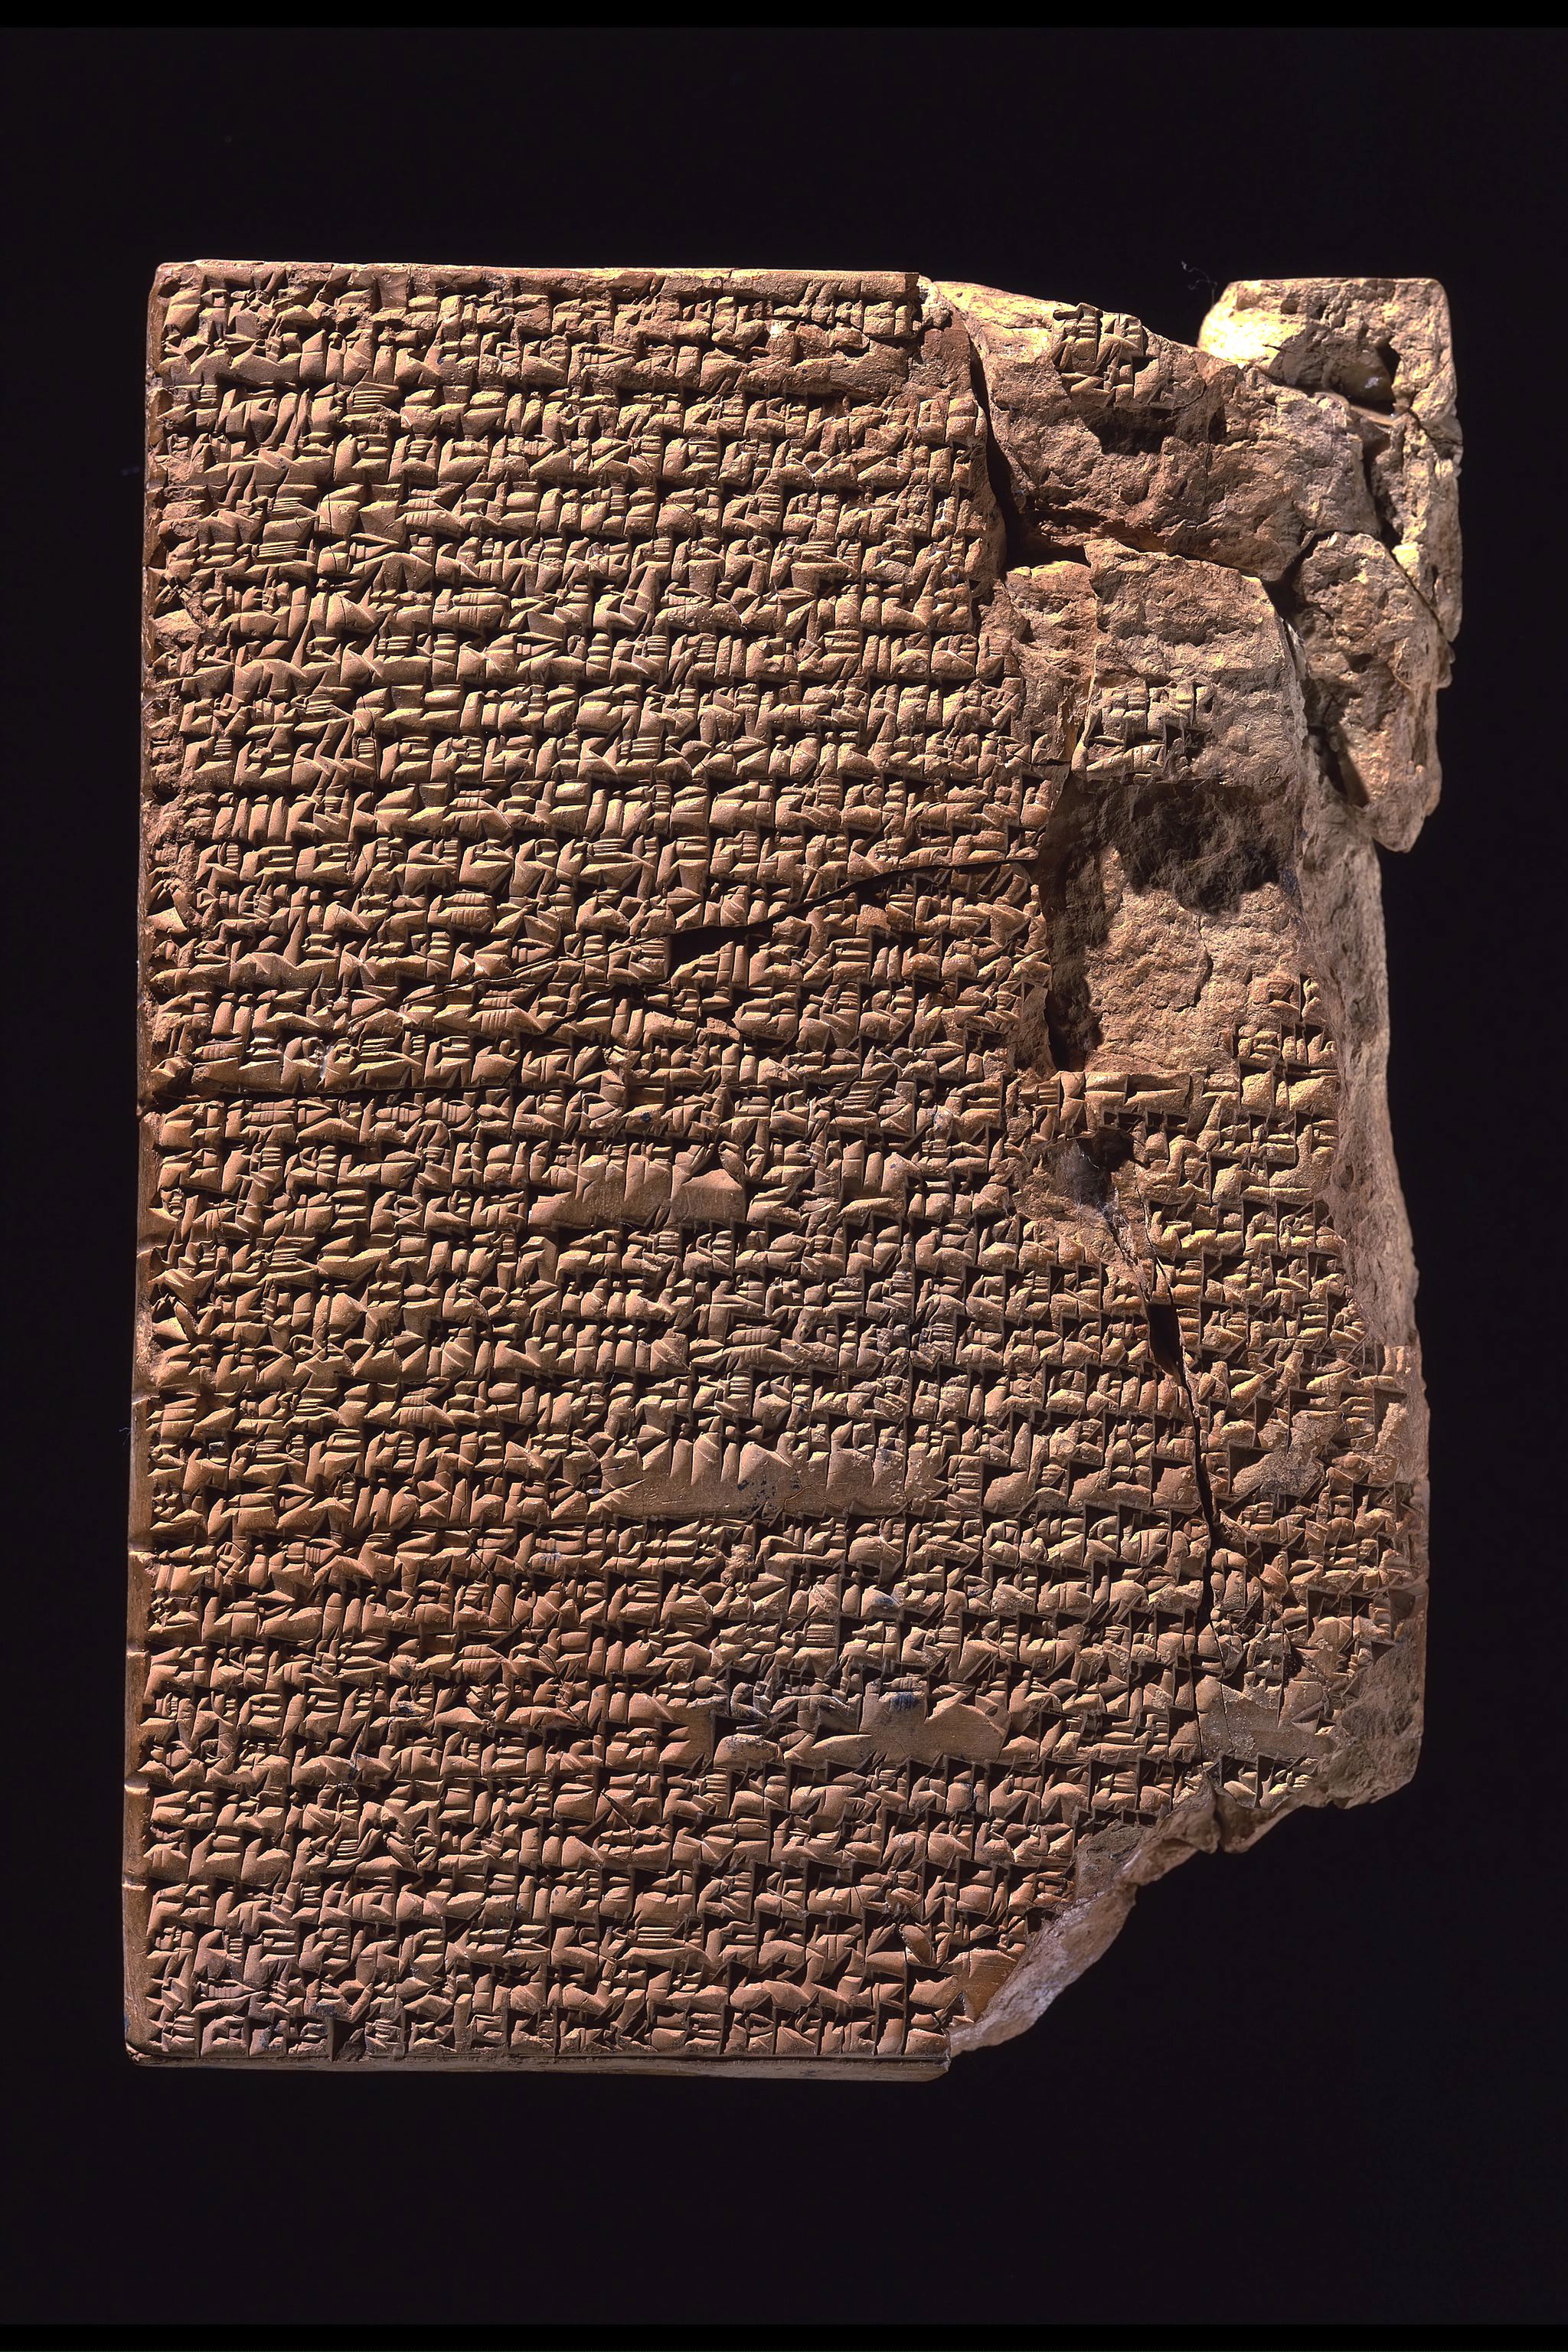 YBC 4644 from the Old Babylonian Period, c. 1750 BC